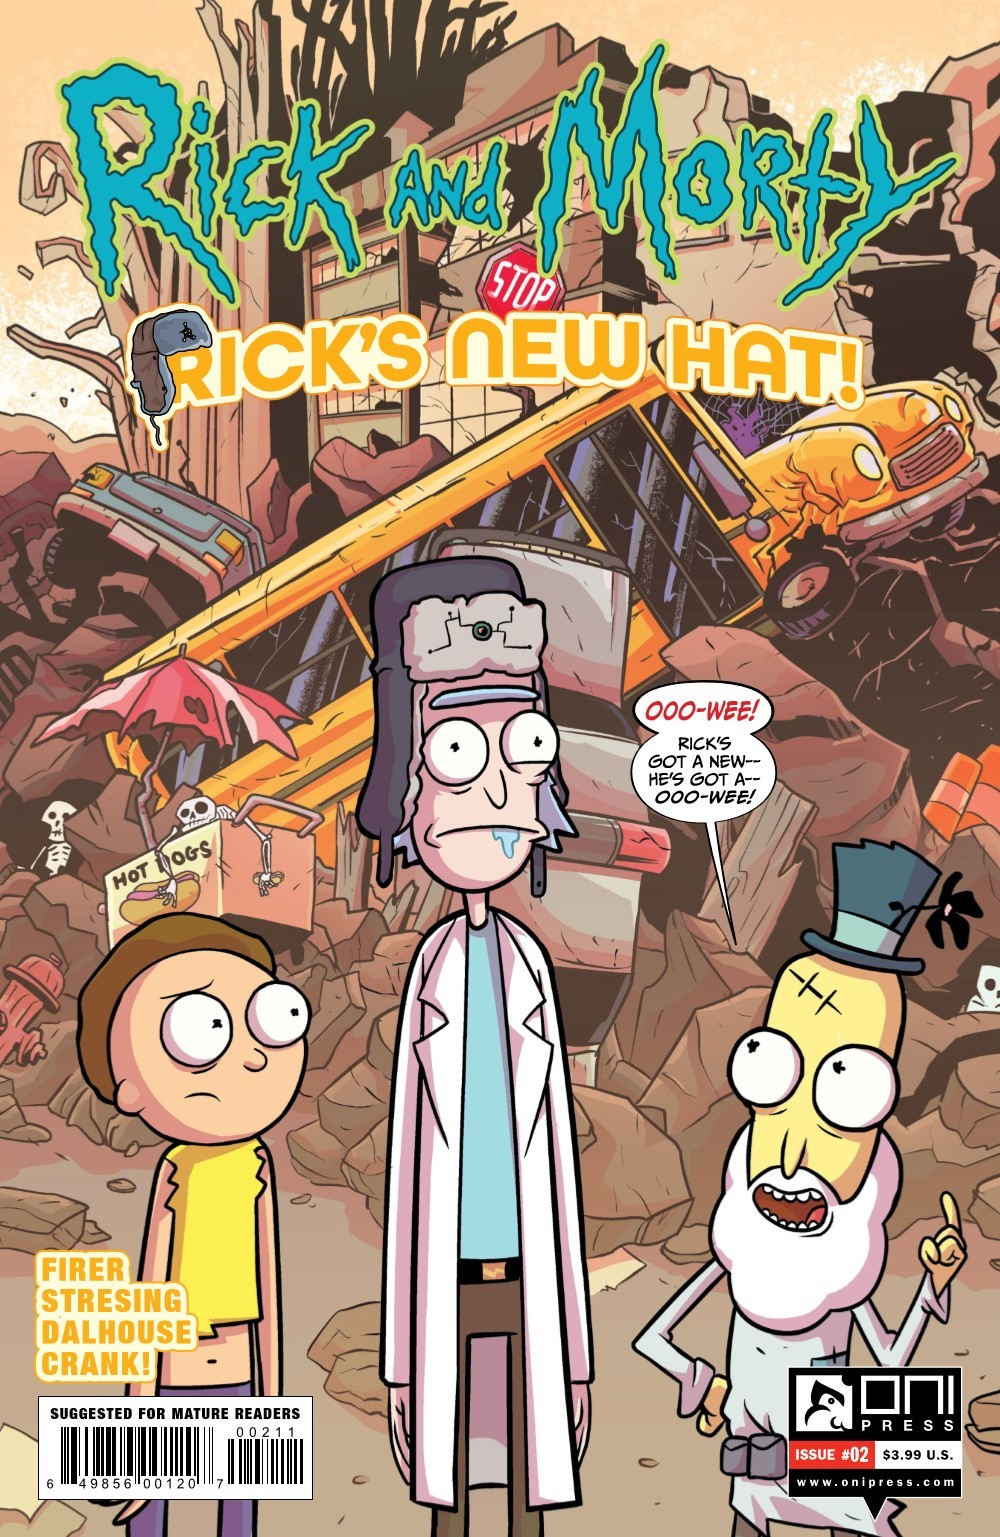 RM-RNH-2-REFERENCE-01 ComicList Previews: RICK AND MORTY RICK'S NEW HAT #2